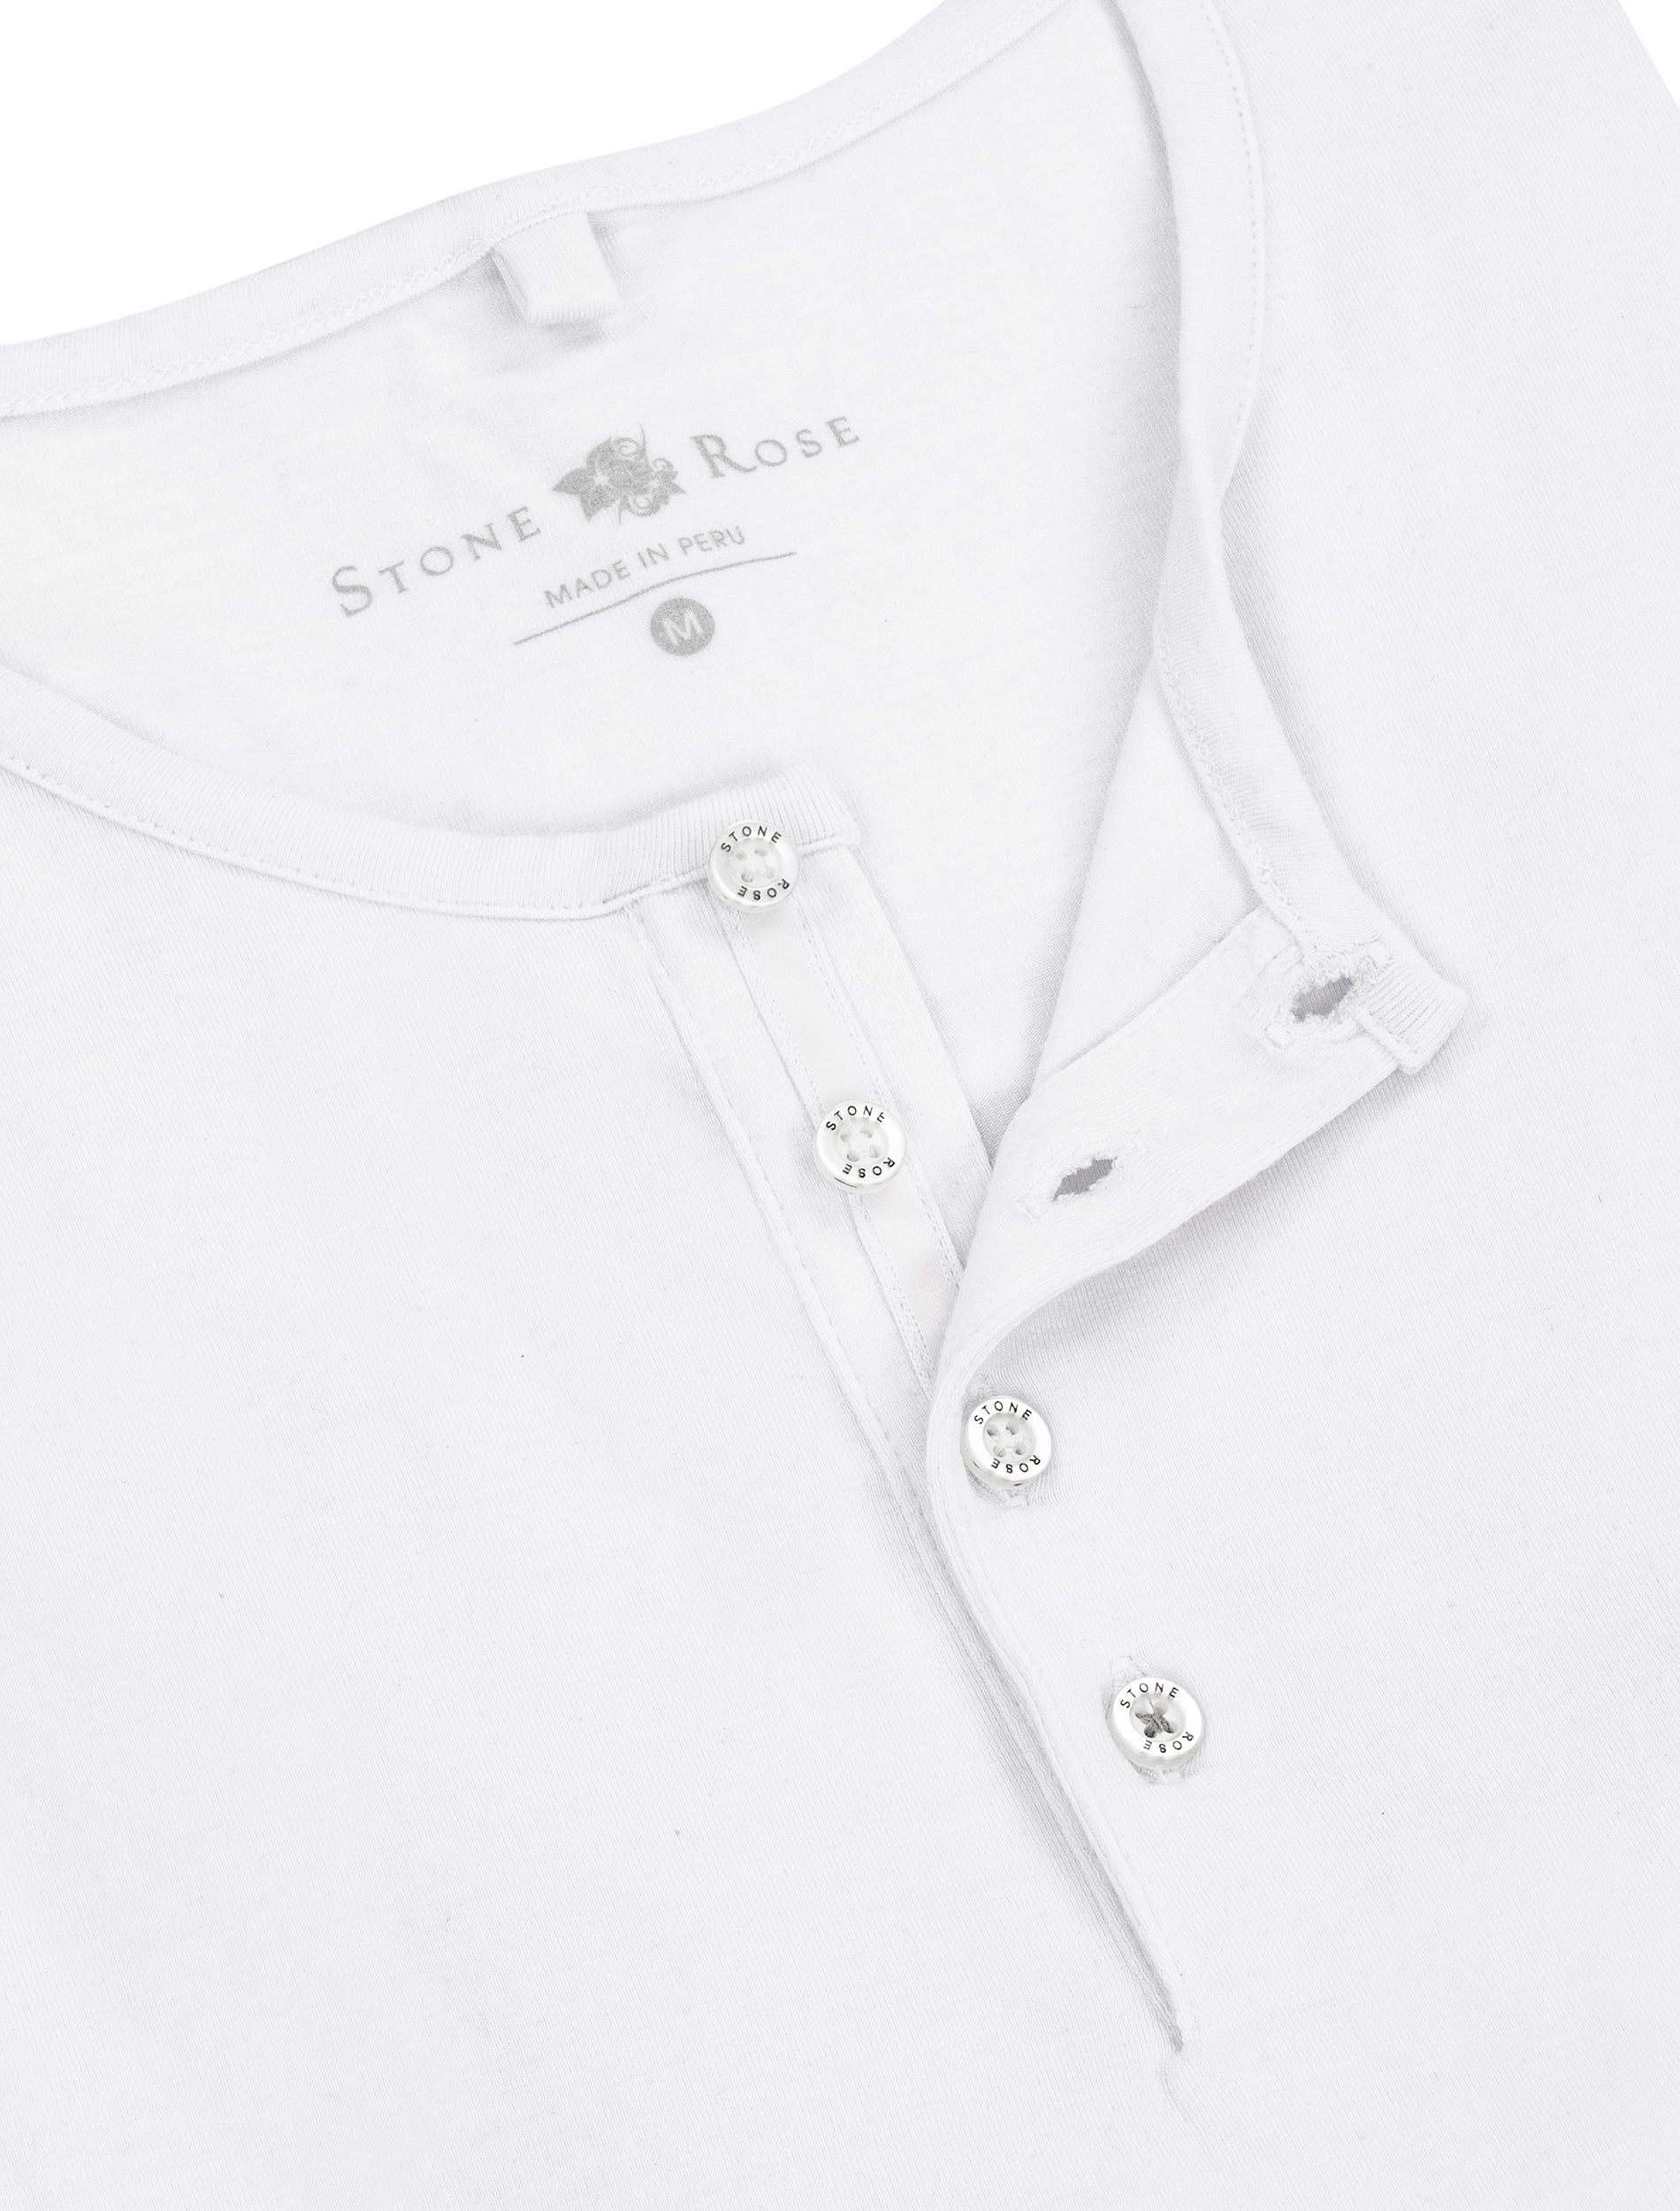 White Modal Short Sleeve Henley-Stone Rose